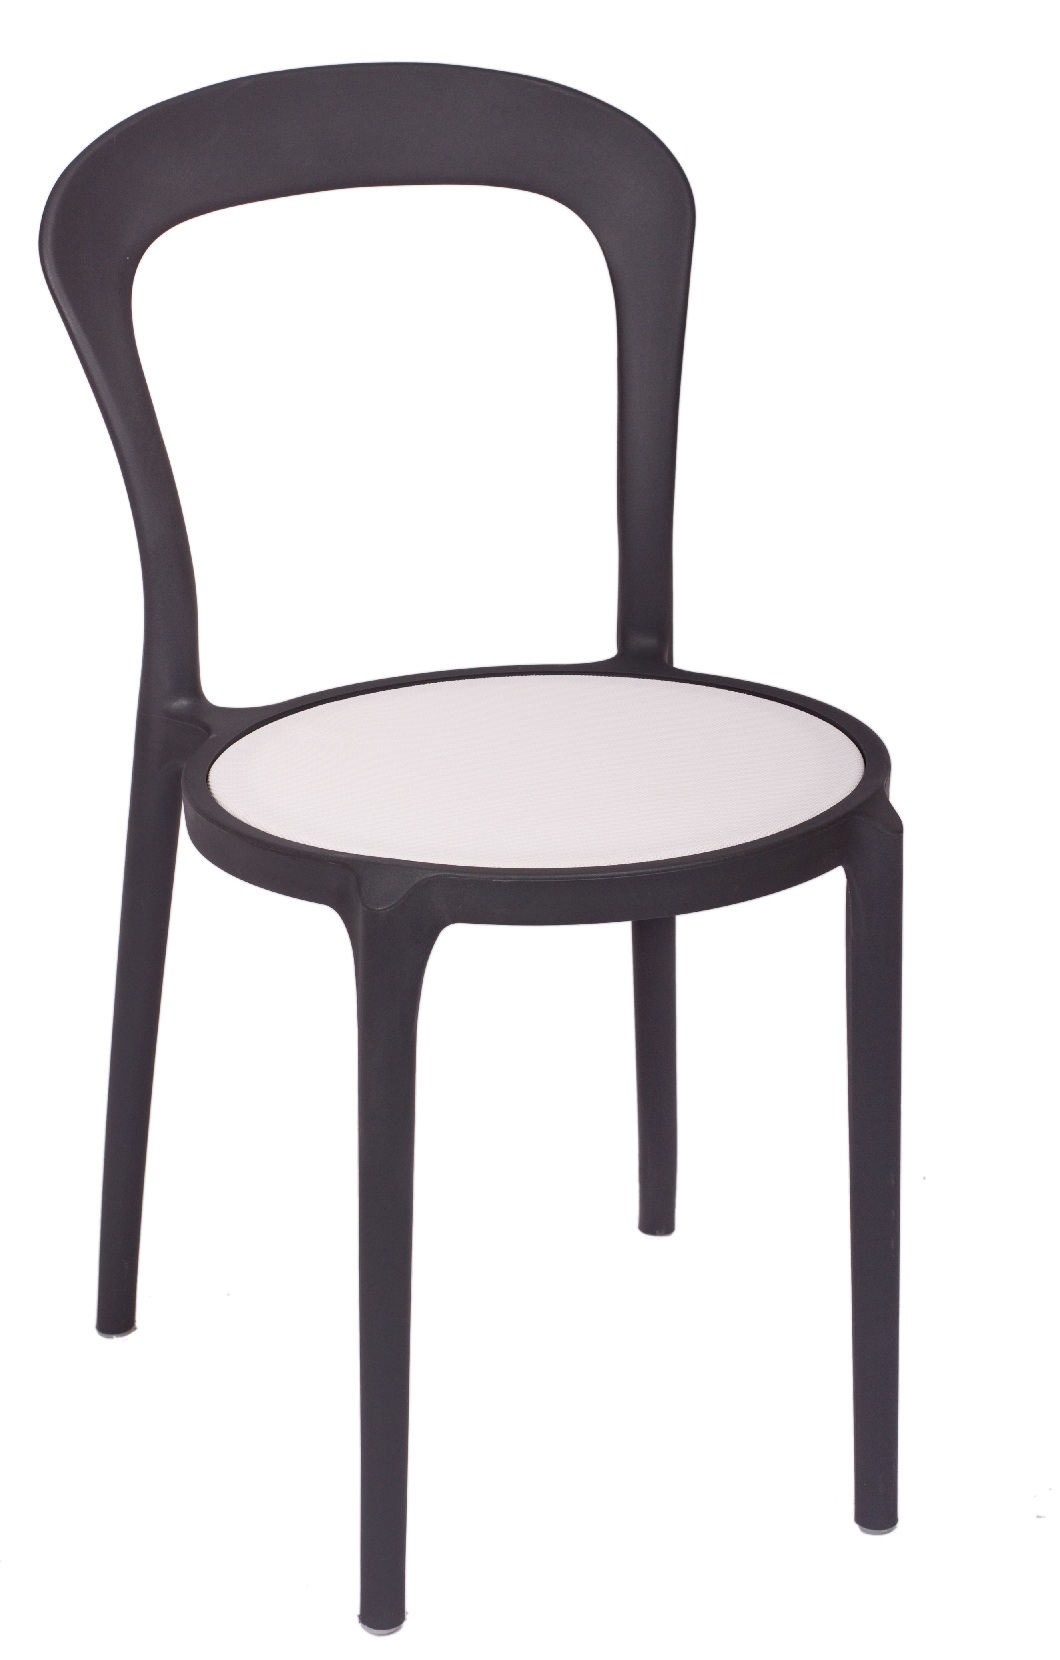 BFM Malibu Outdoor Restaurant Chair- Charcoal w/ Textilene White